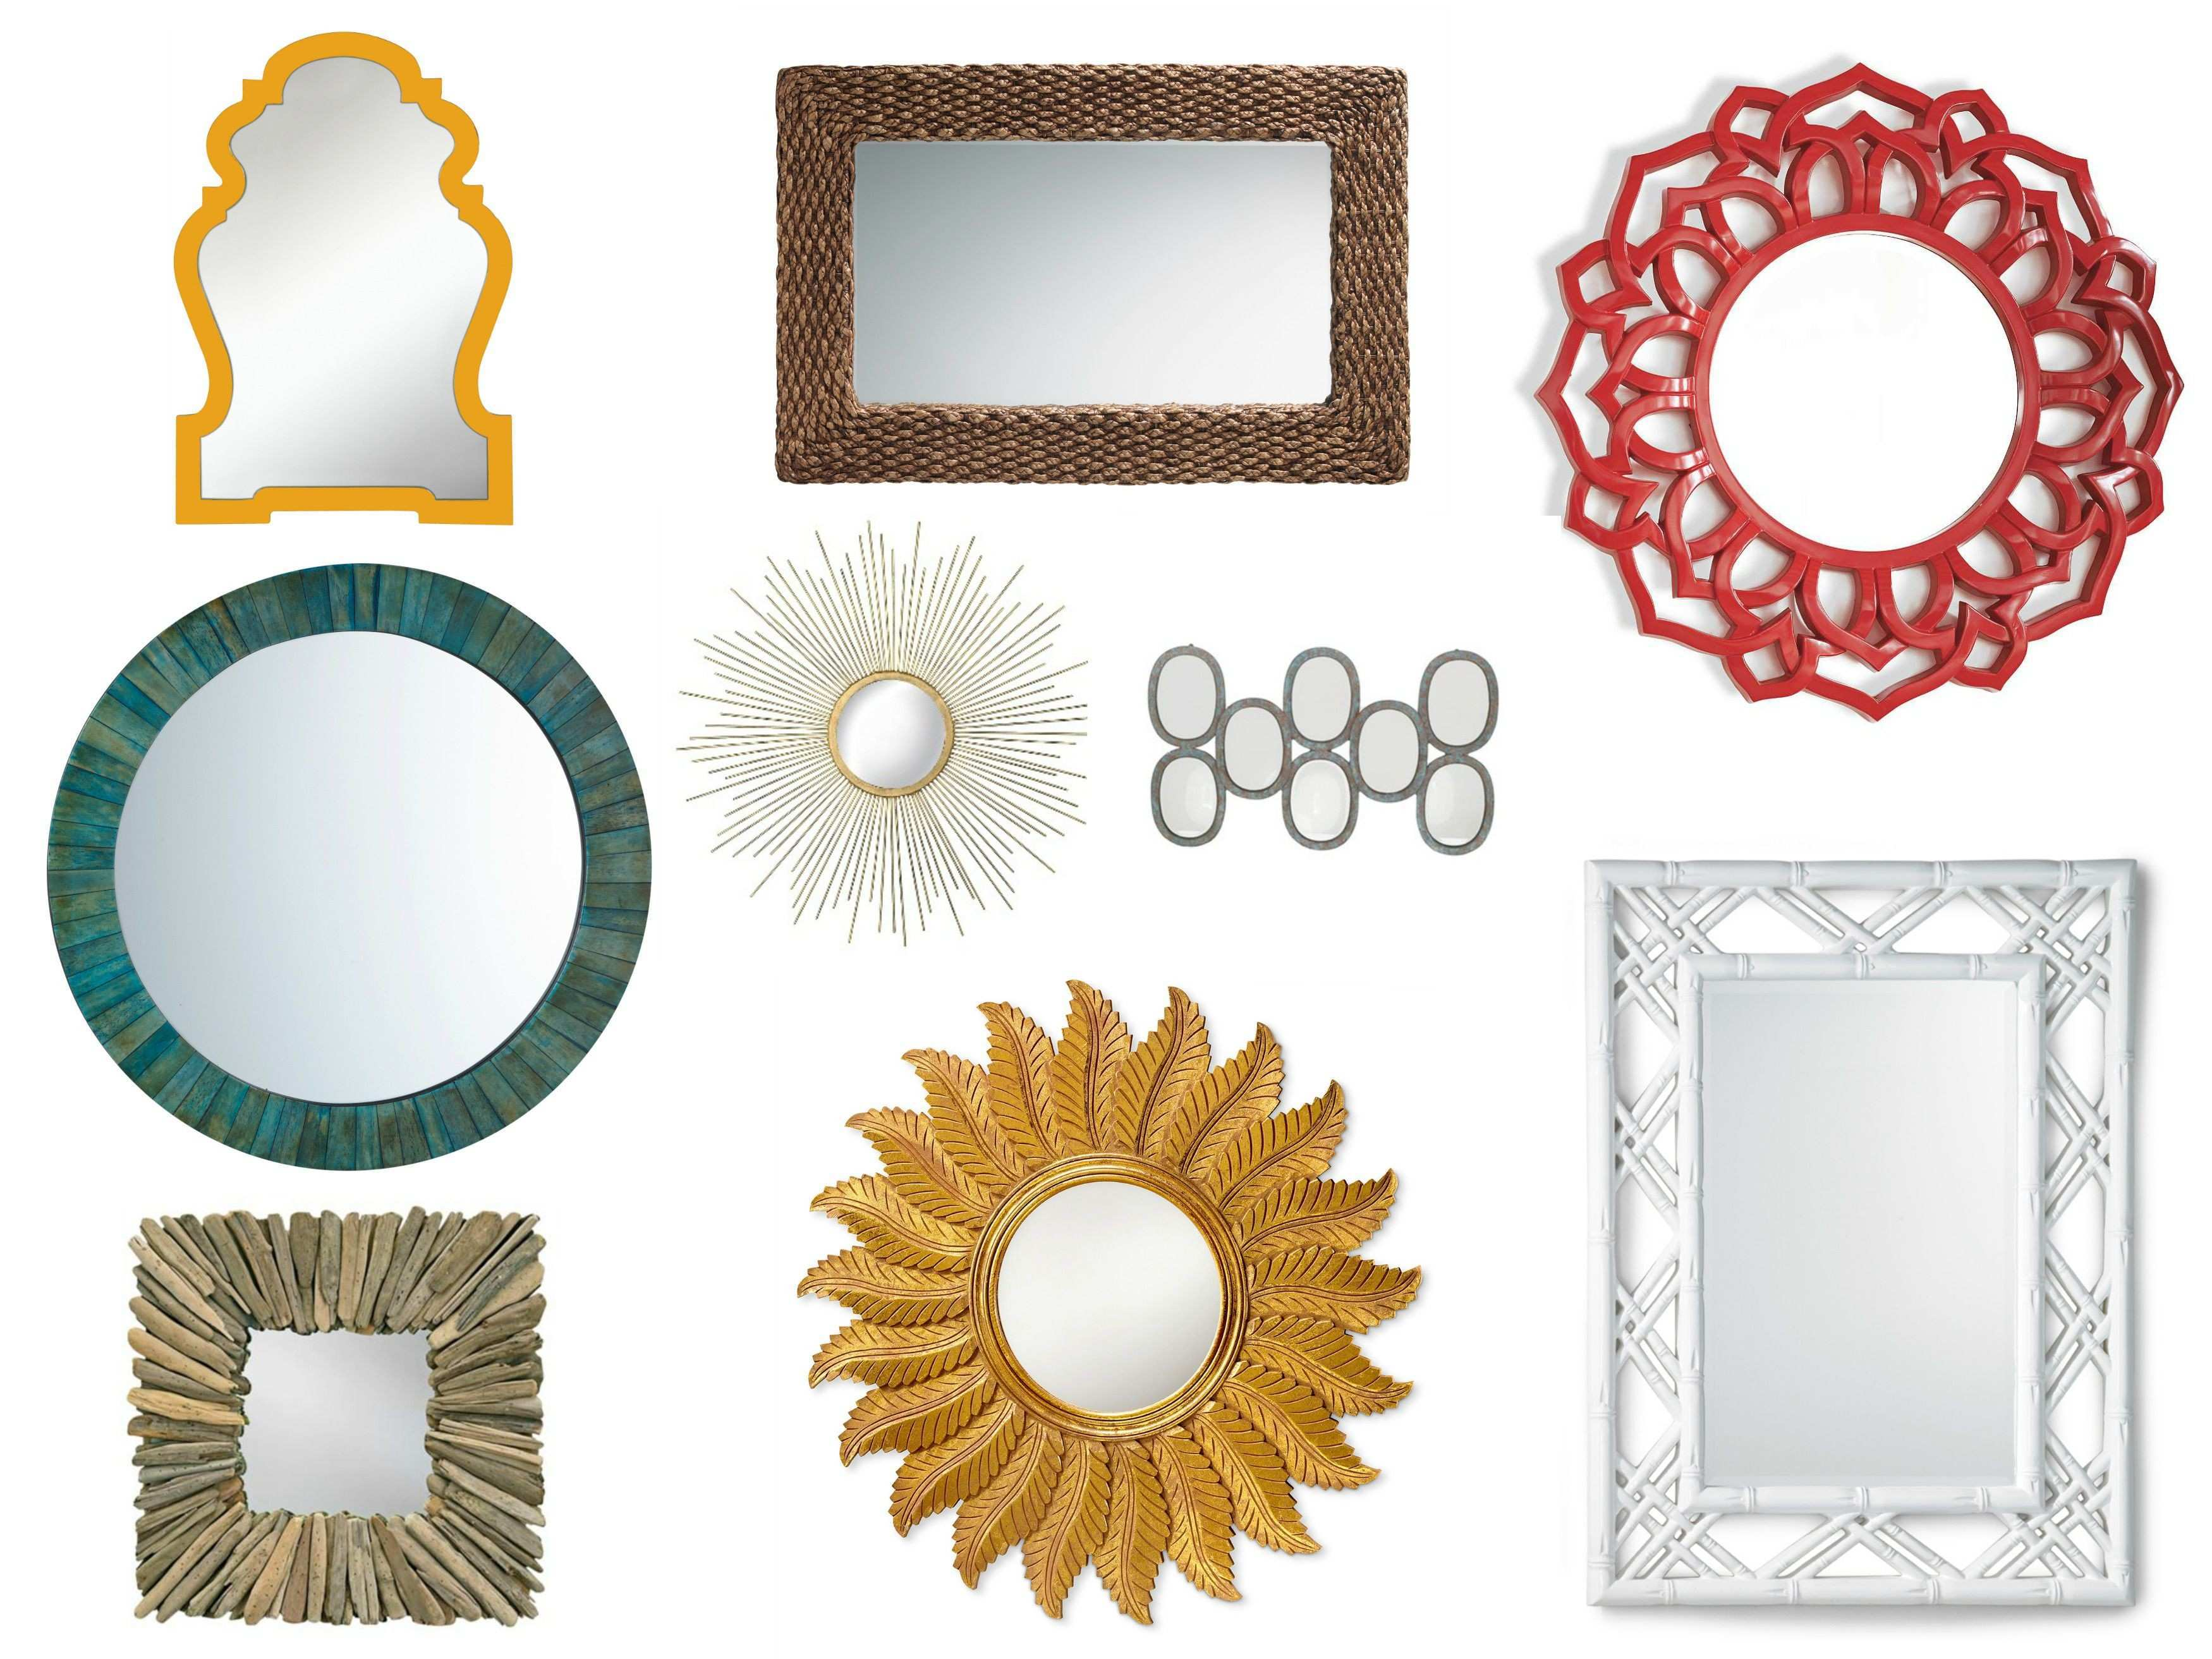 Reasons Why Designers Love Mirrors